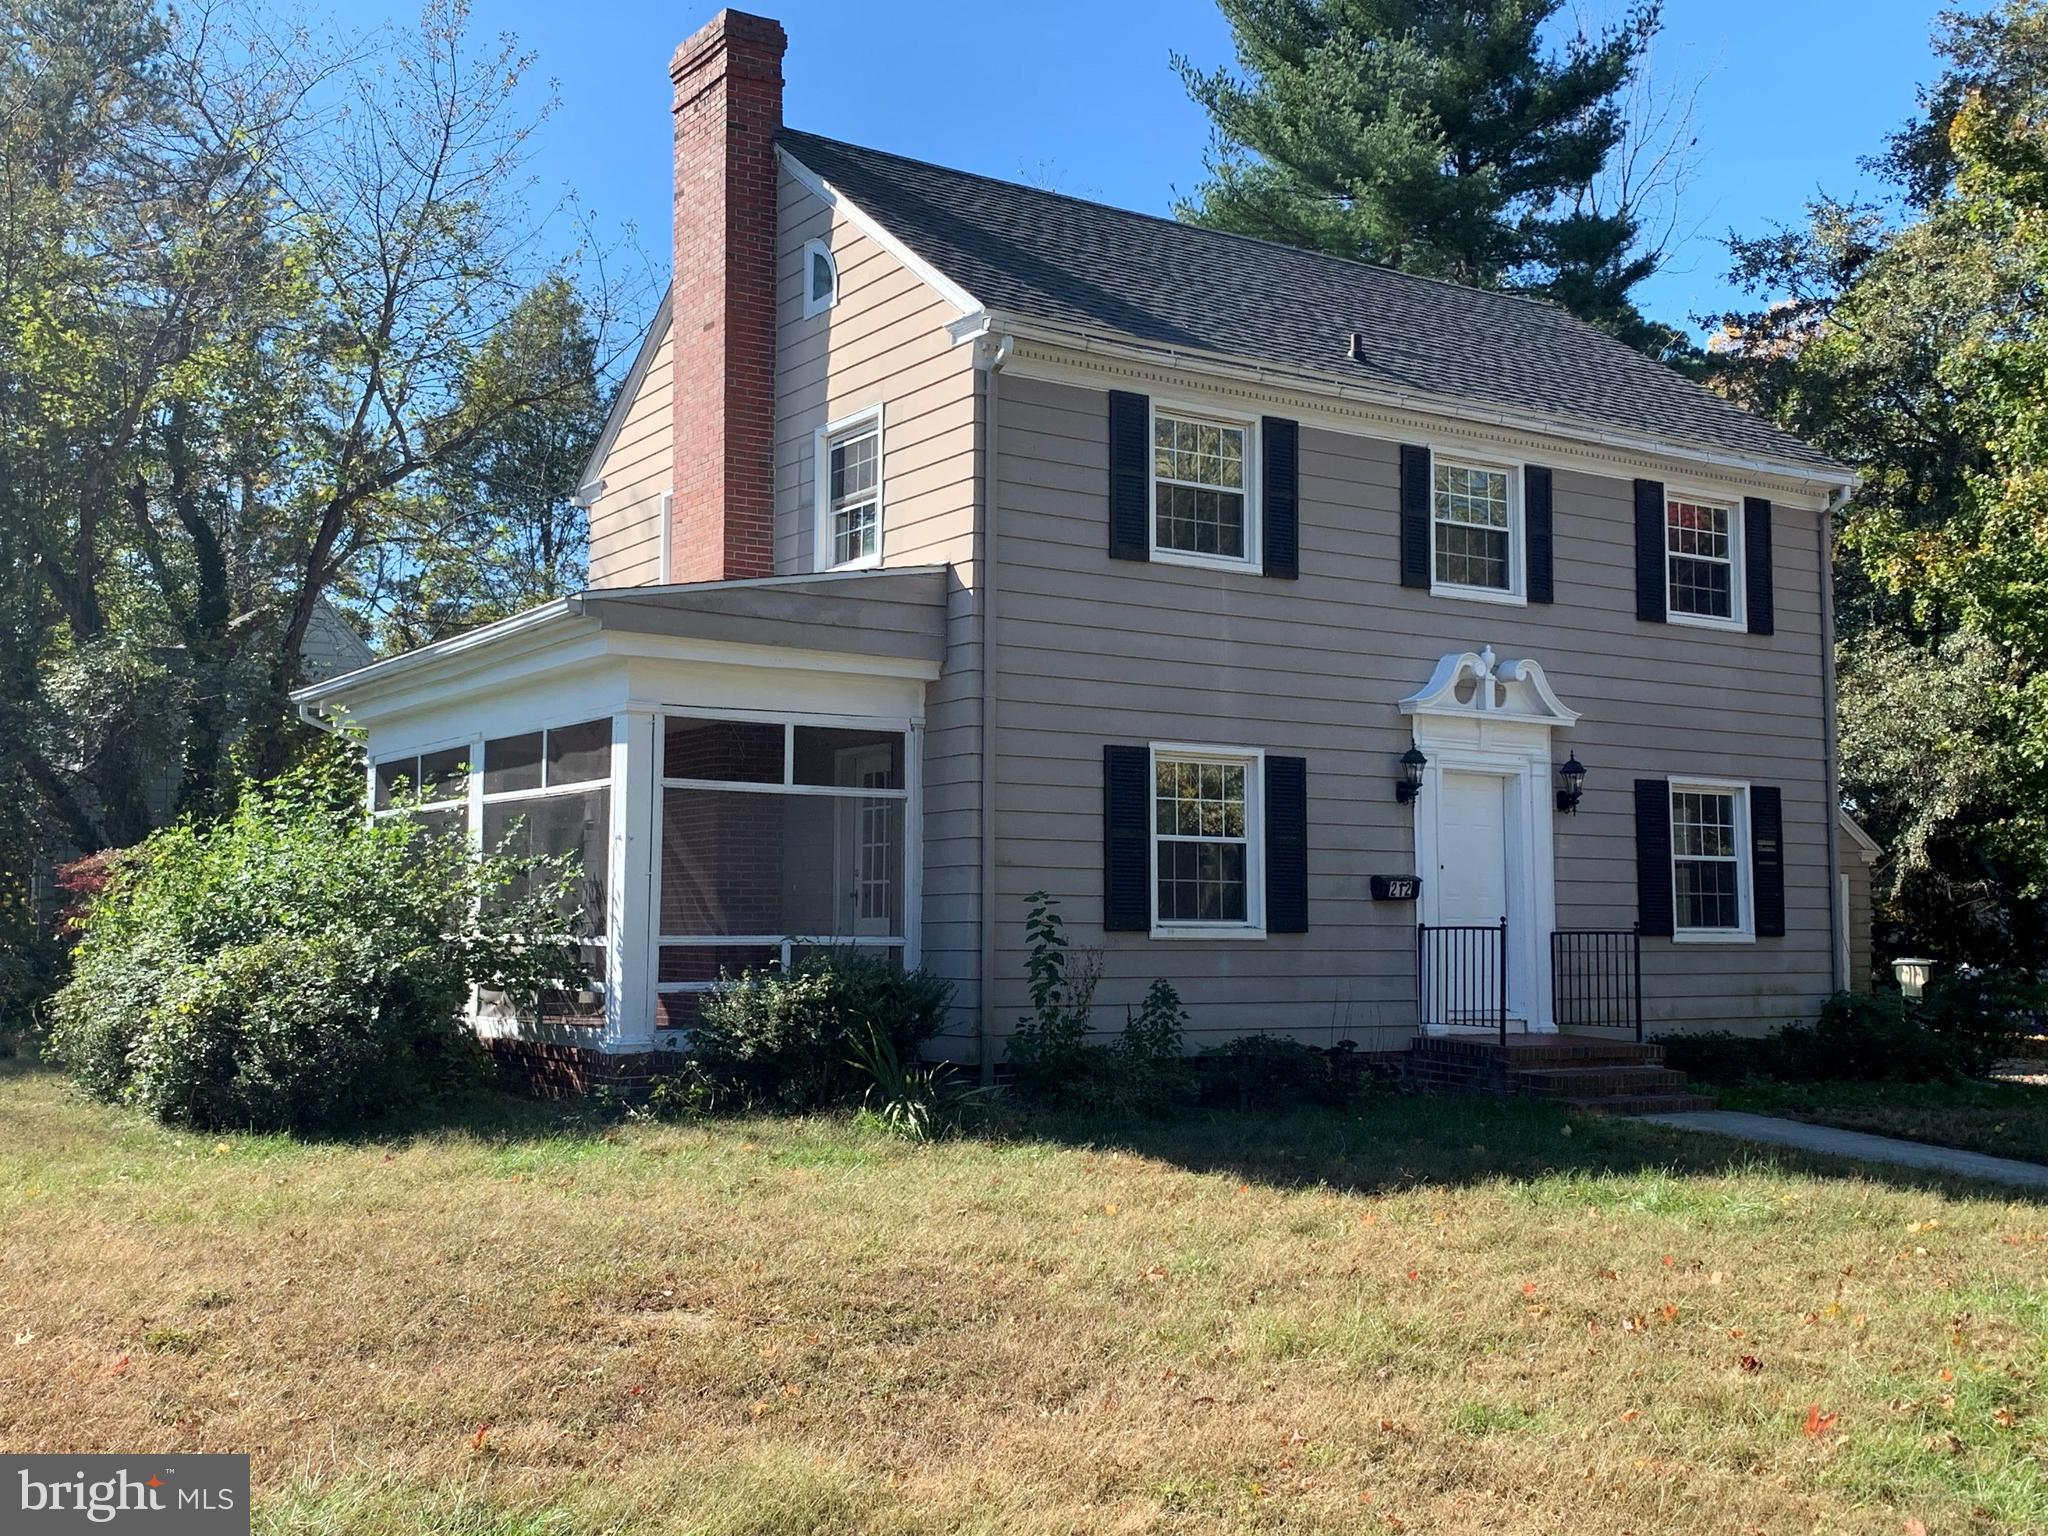 Welcome home to this lovely colonial nestled on a picturesque tree-lined street in Clairmont Village